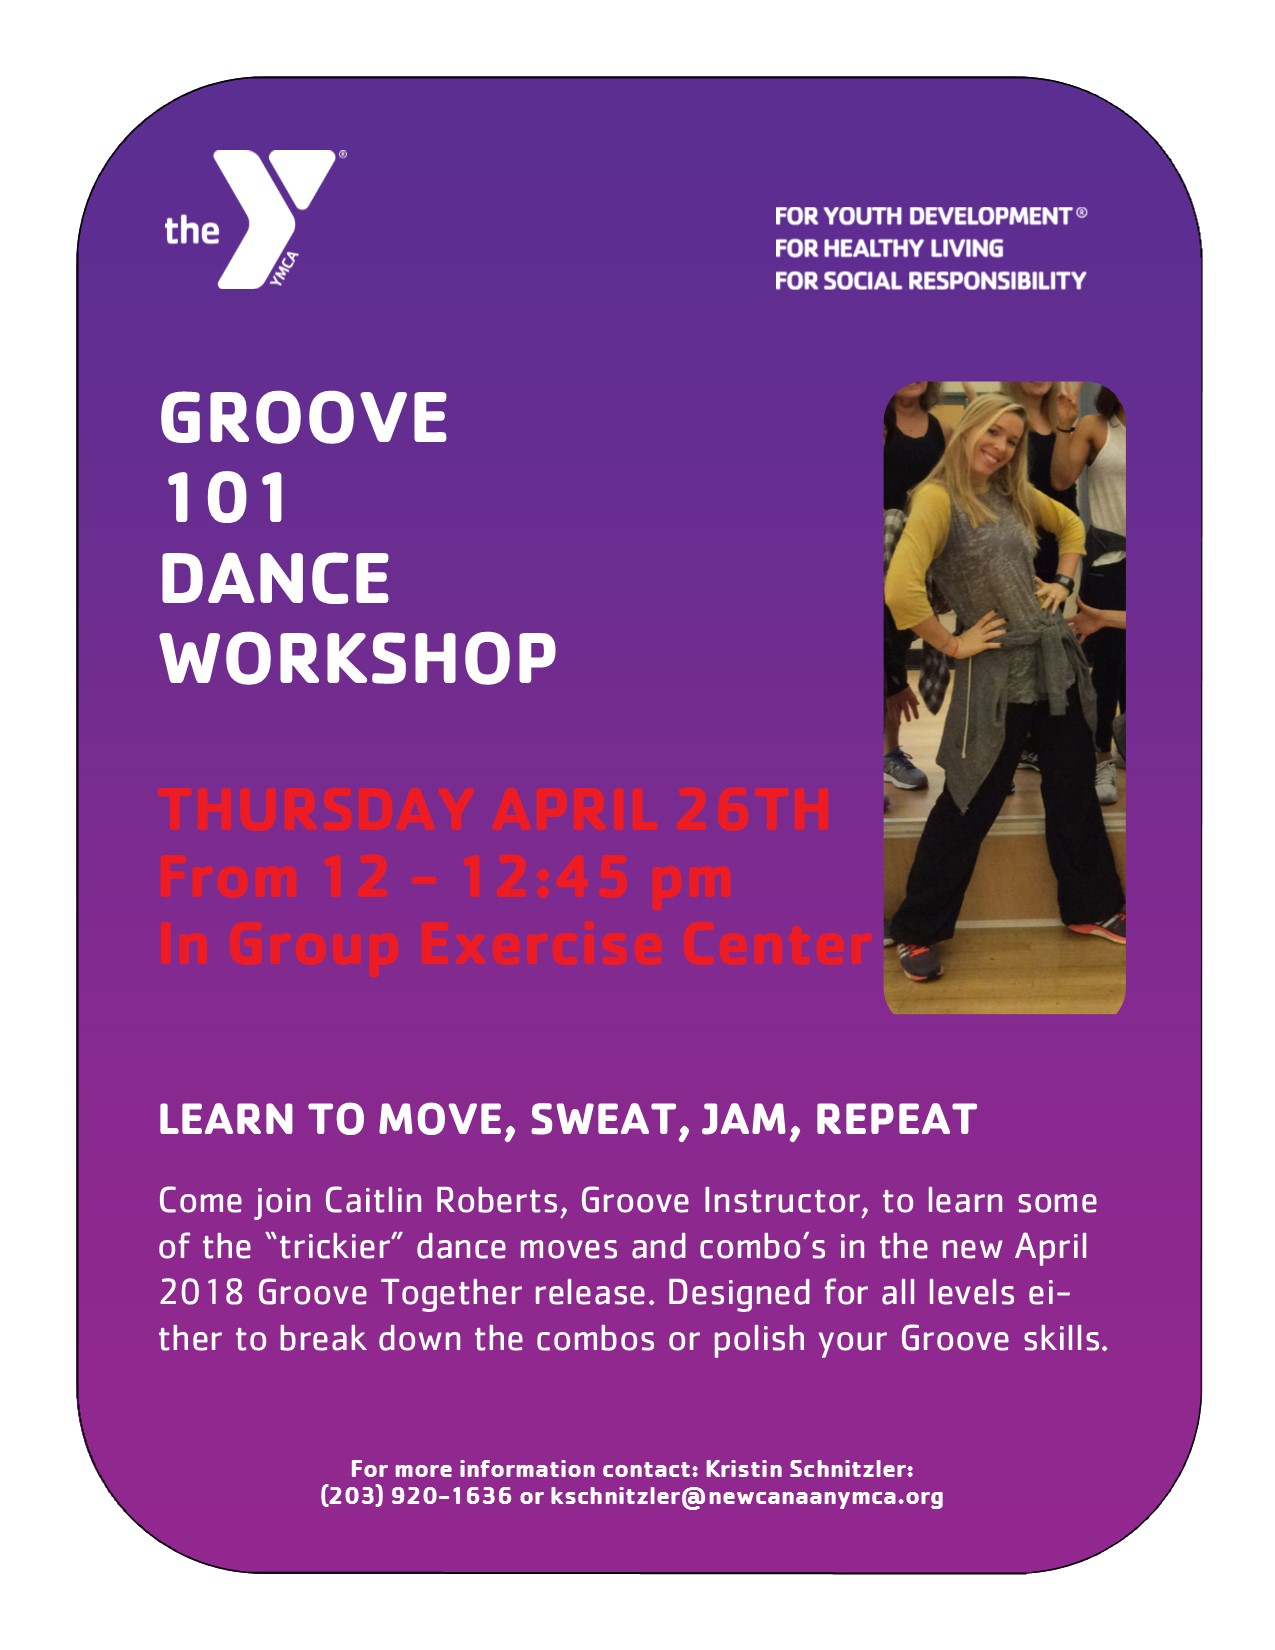 Groove 101 Dance Workshop @ Group Exercise Center